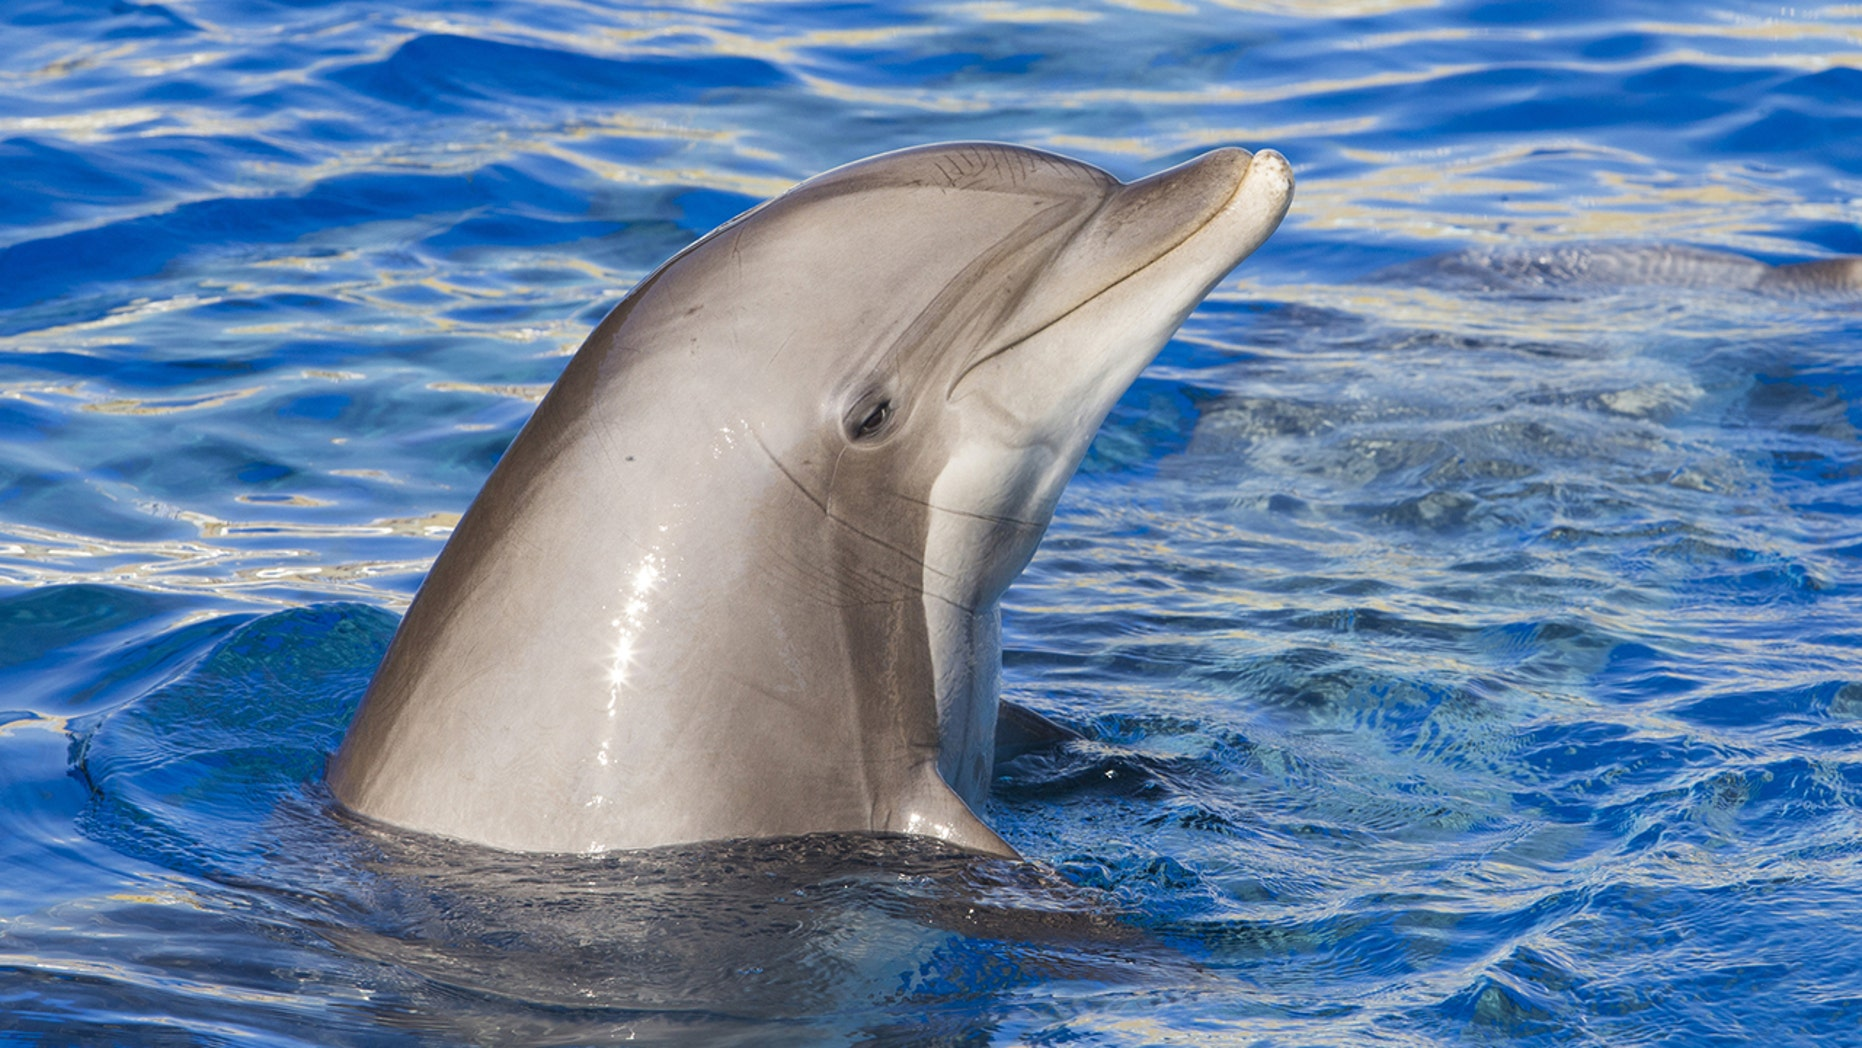 A bottlenose dolphin in Landévennec (not pictured) has been rubbing up against boats, kayaks and swimmers, prompting the mayor to issue a swimming ban.